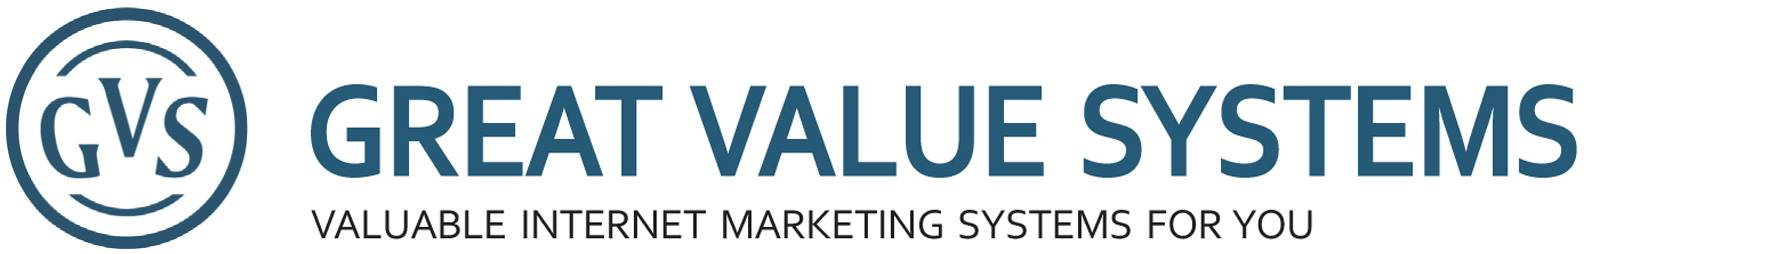 GREAT VALUE SYSTEMS